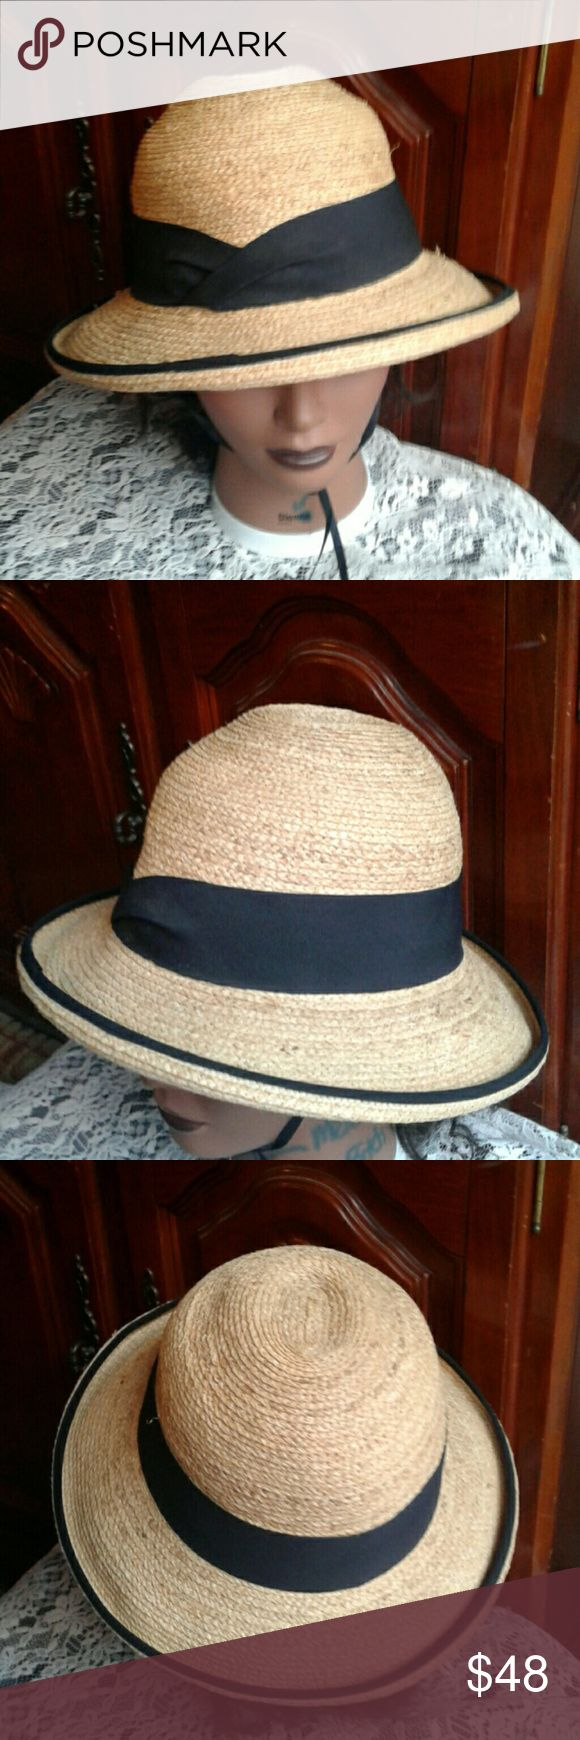 """THE TILLEY RAFFIA PALM HAT """"BRAND NEW"""" UPF 50 + SUN-BLOCK RATING + PACKABLE + REMOVABLE SWEAT BAND + WATER RESISTANT FINISH THE TILLEY  Accessories Hats"""